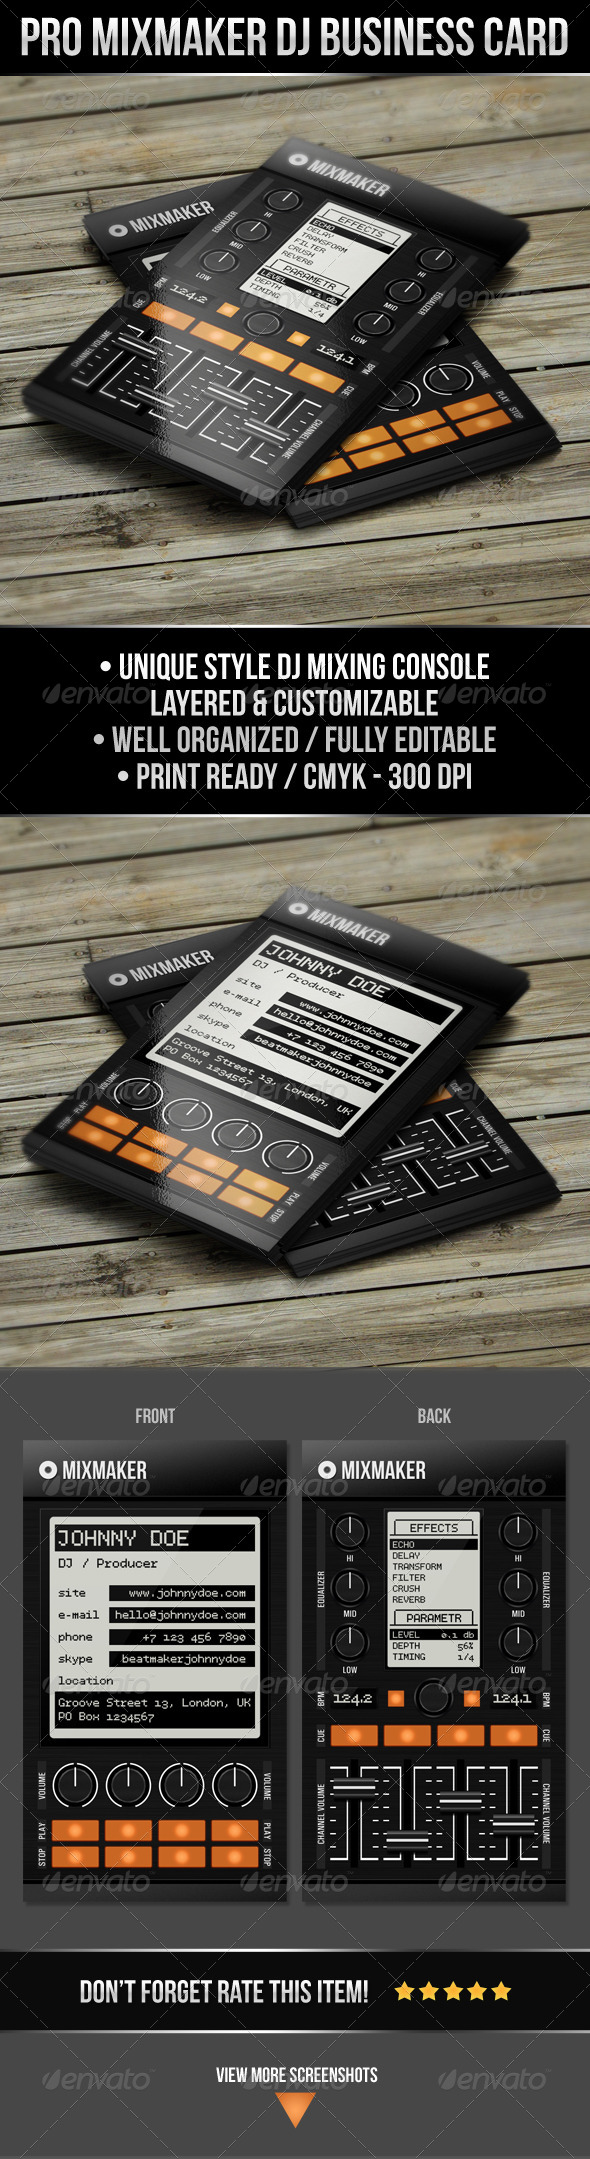 Pro Mixmaker DJ Business Card - Industry Specific Business Cards